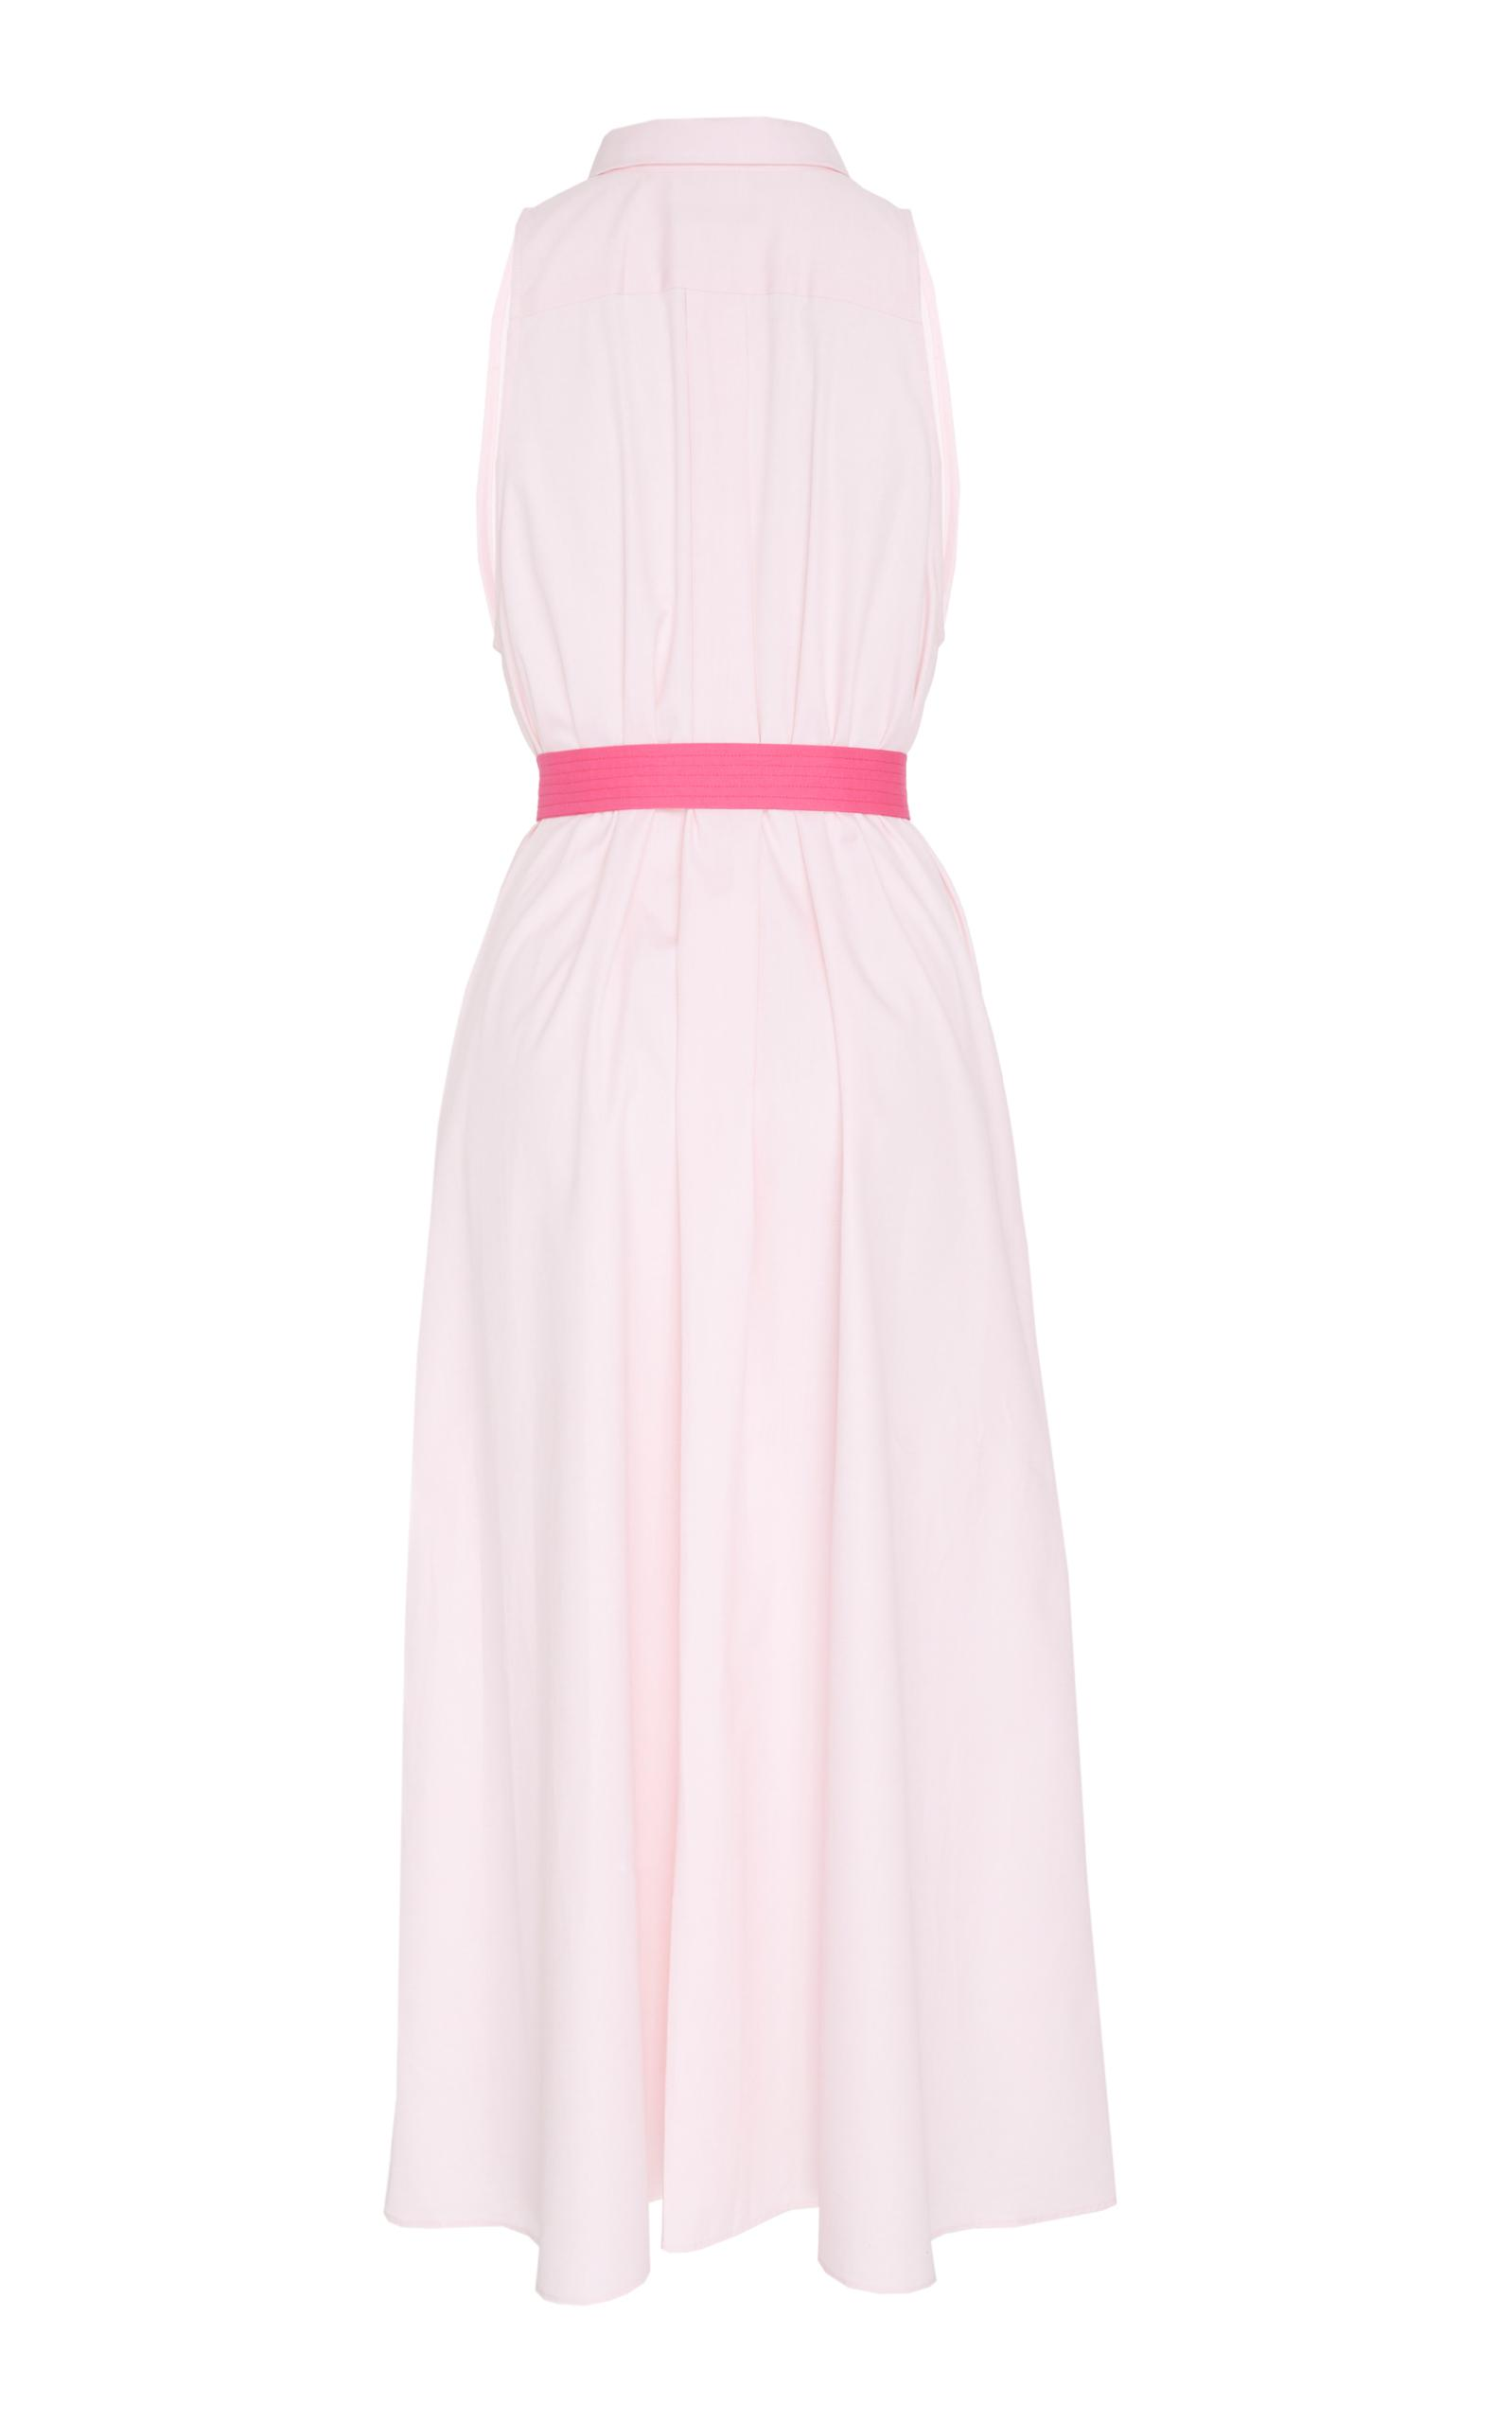 726d3991376319 Lyst - MDS Stripes Sleeveless Button Down Shirtdress in Pink